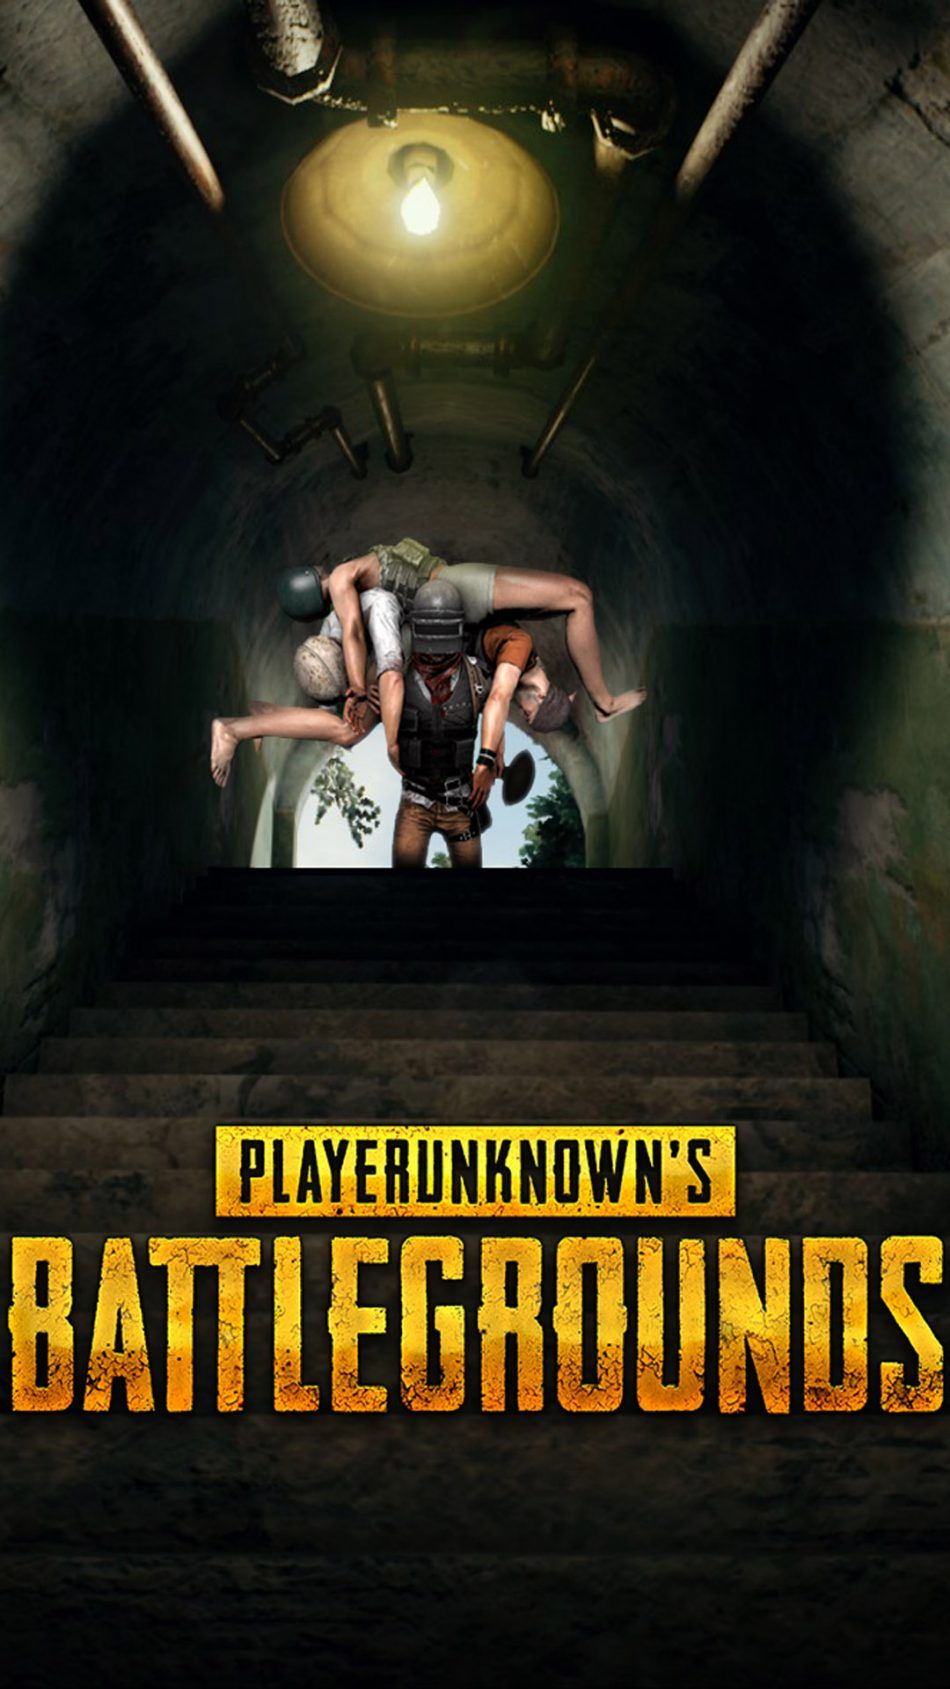 Saving Teammates Playerunknown S Battlegrounds Pubg Free 4k Ultra Hd Mobile Wallpaper Hd Wallpapers For Mobile Gaming Wallpapers Mobile Wallpaper